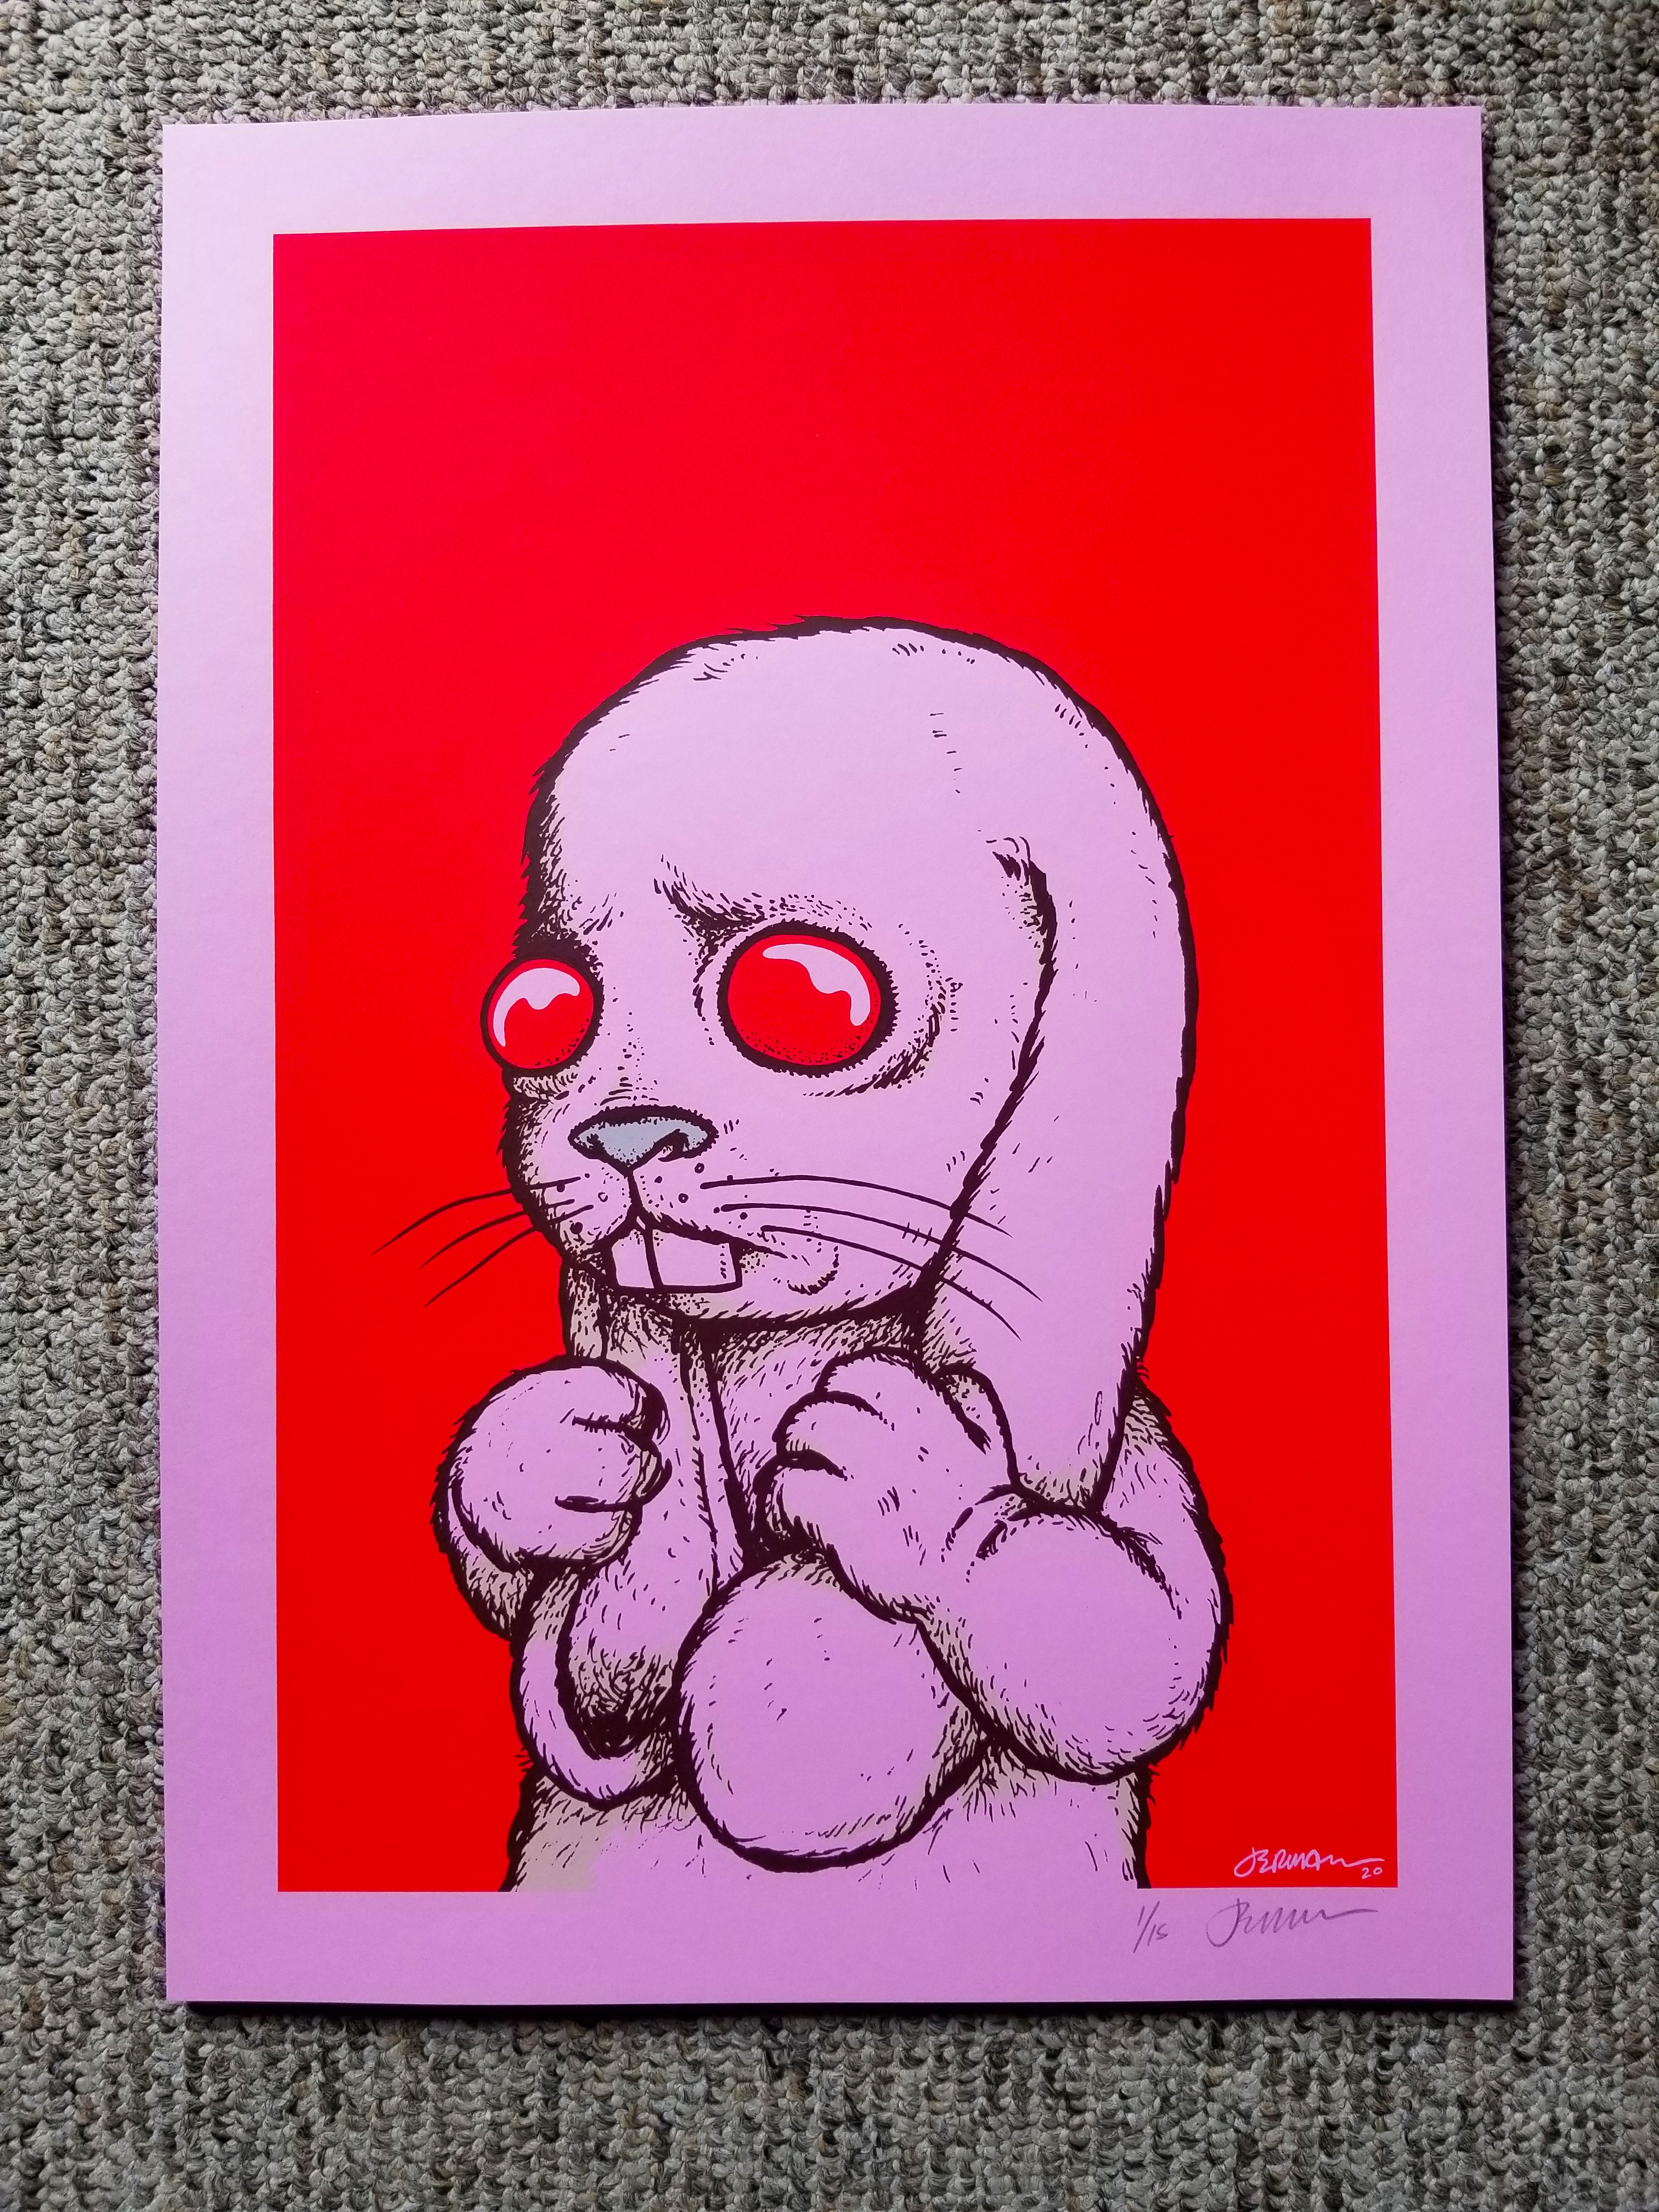 'I have to snap out of this.' Art Print (PINK Variant Edition of Only 15 Pieces)